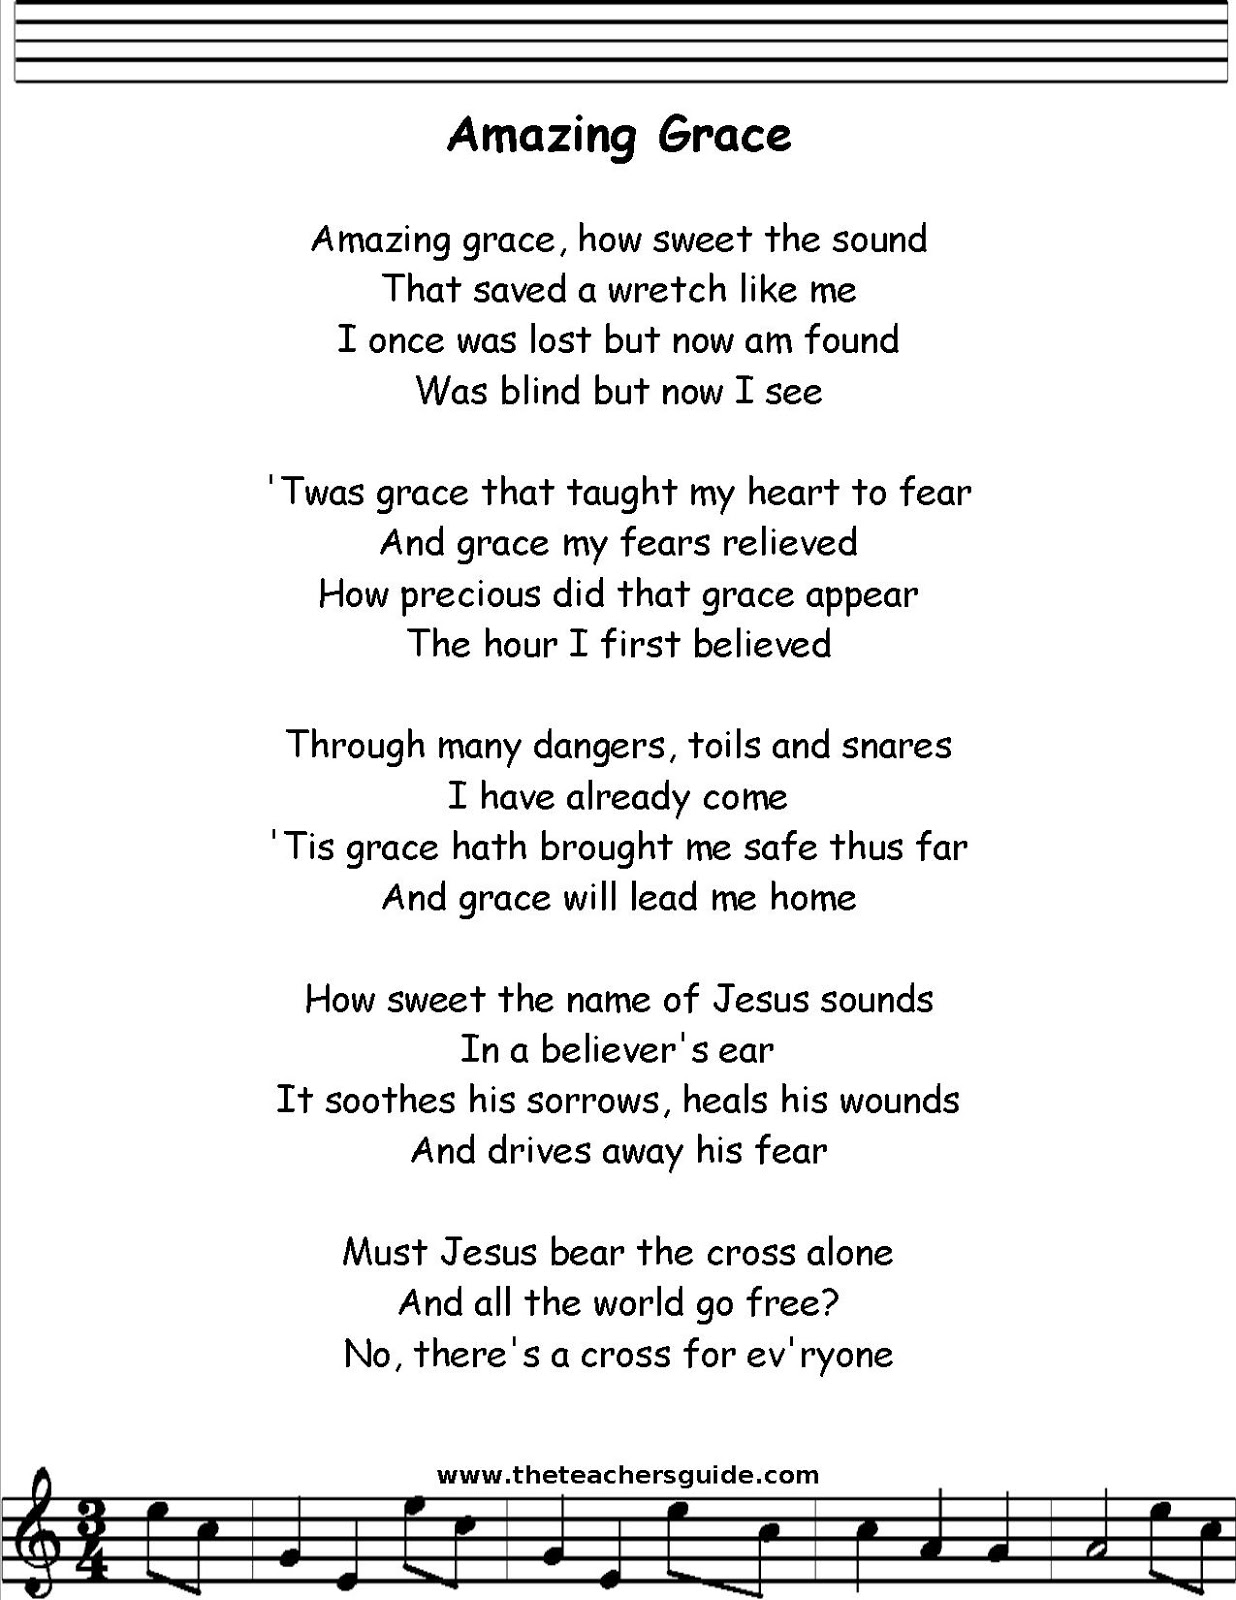 Amazing Grace Lyrics - YouTube